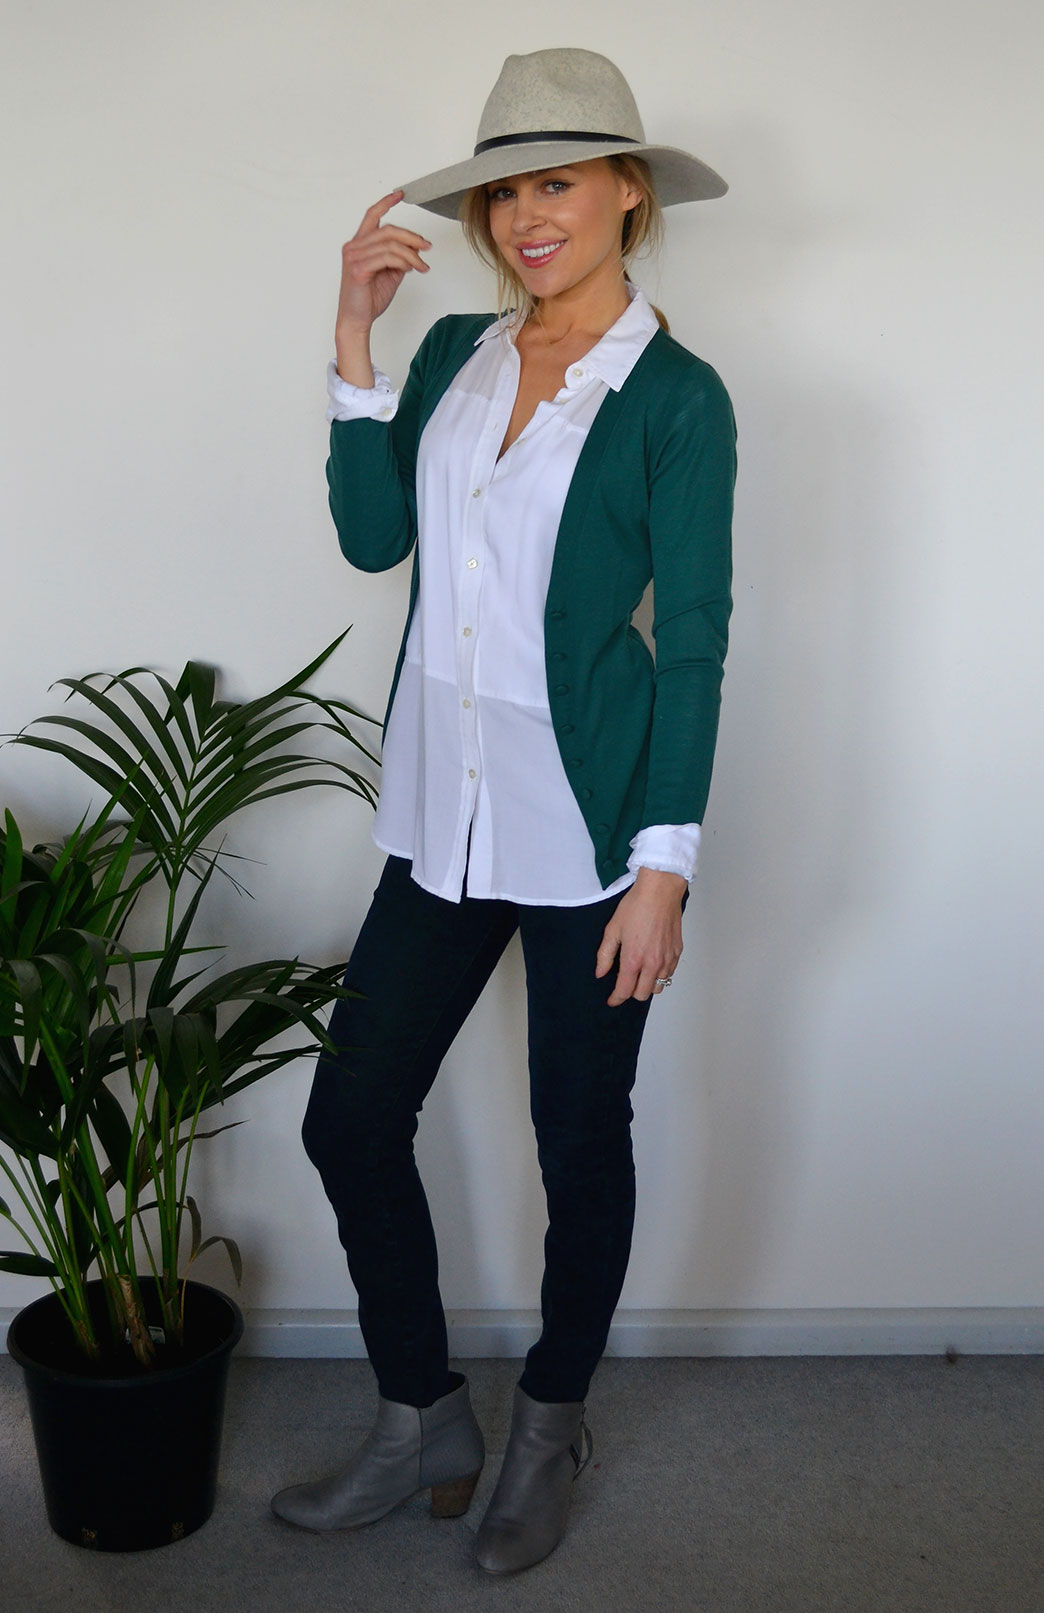 Annie V-Neck Cardigan - Women's Emerald Green Long Sleeve Wool Cardigan with hand-made buttons - Smitten Merino Tasmania Australia